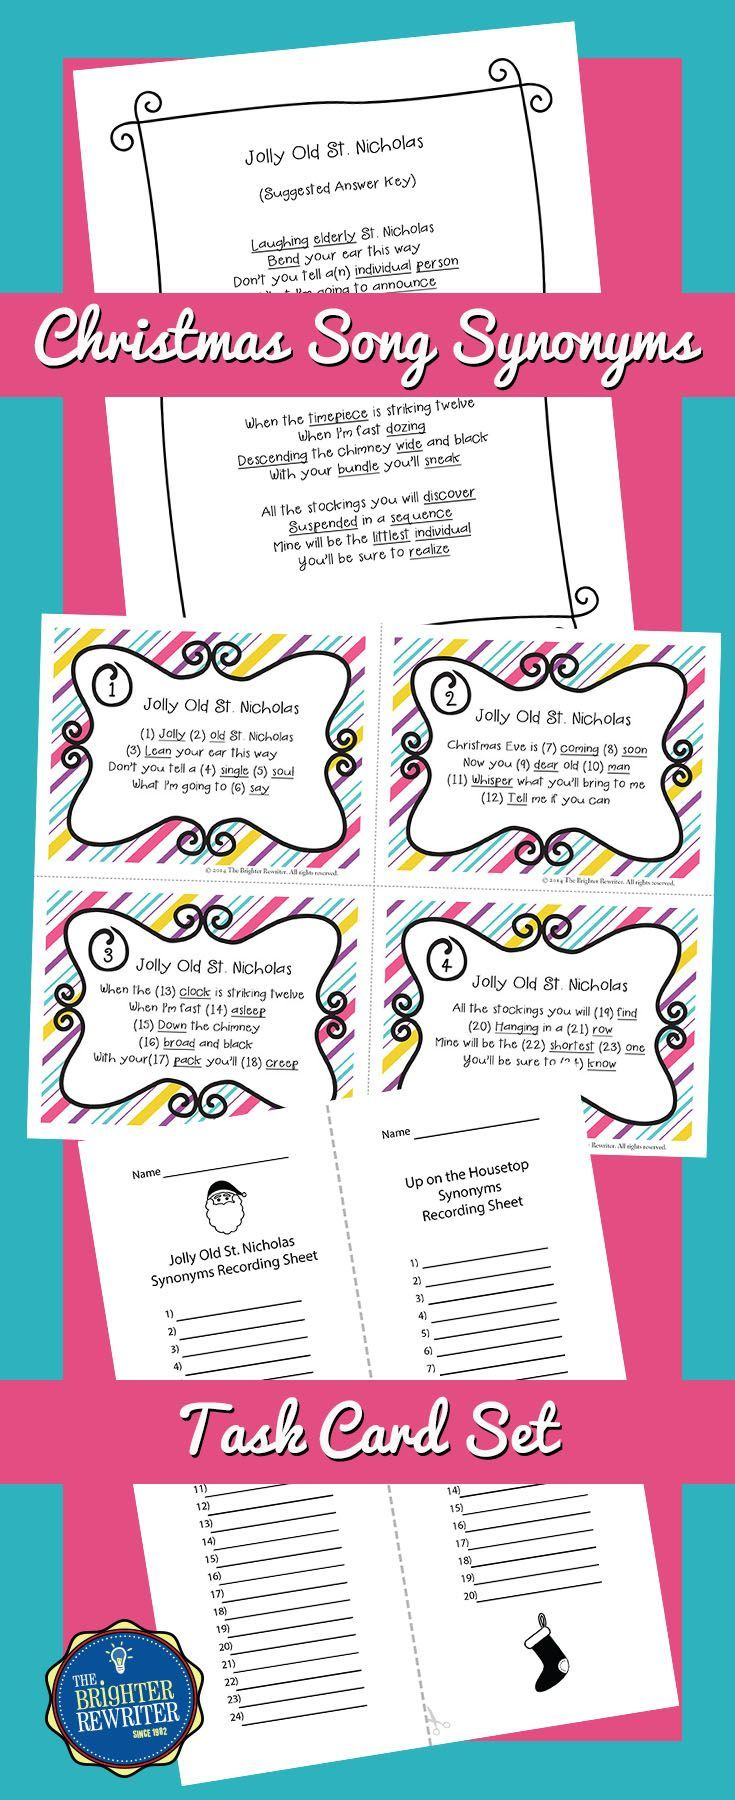 These 24 task cards feature verses from 6 popular Christmas carols. Students substitute synonyms for the underlined lyrics. For extra fun, have students sing the new song versions using synonyms!